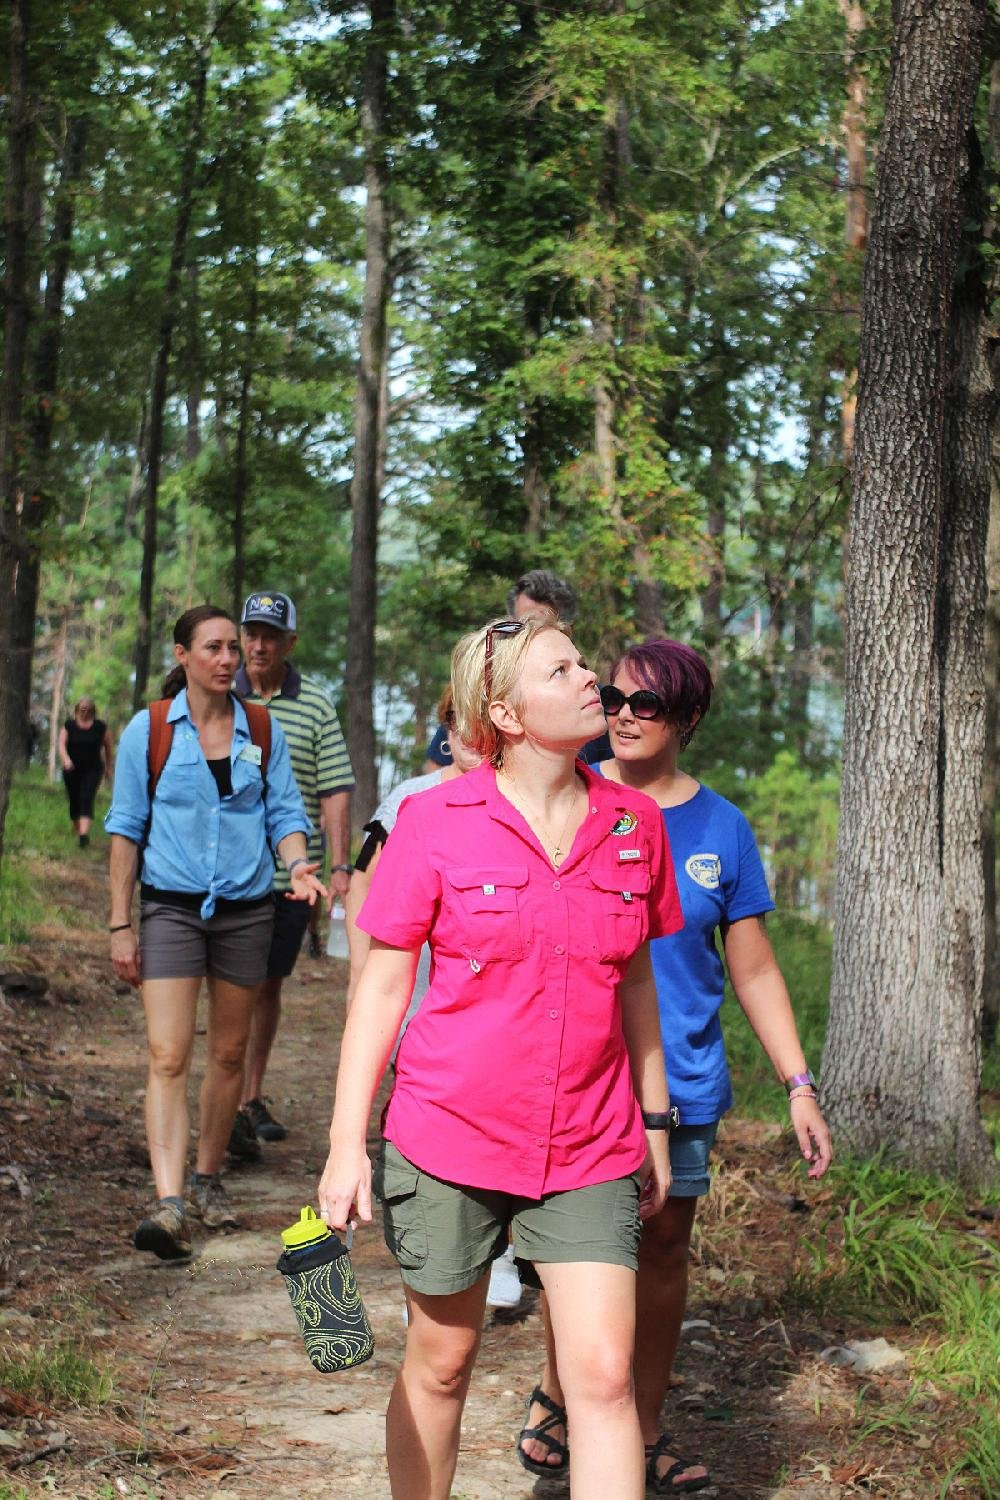 About 100 people attended the opening of the Electric Island Nature Trail and went for a 75-minute hike.